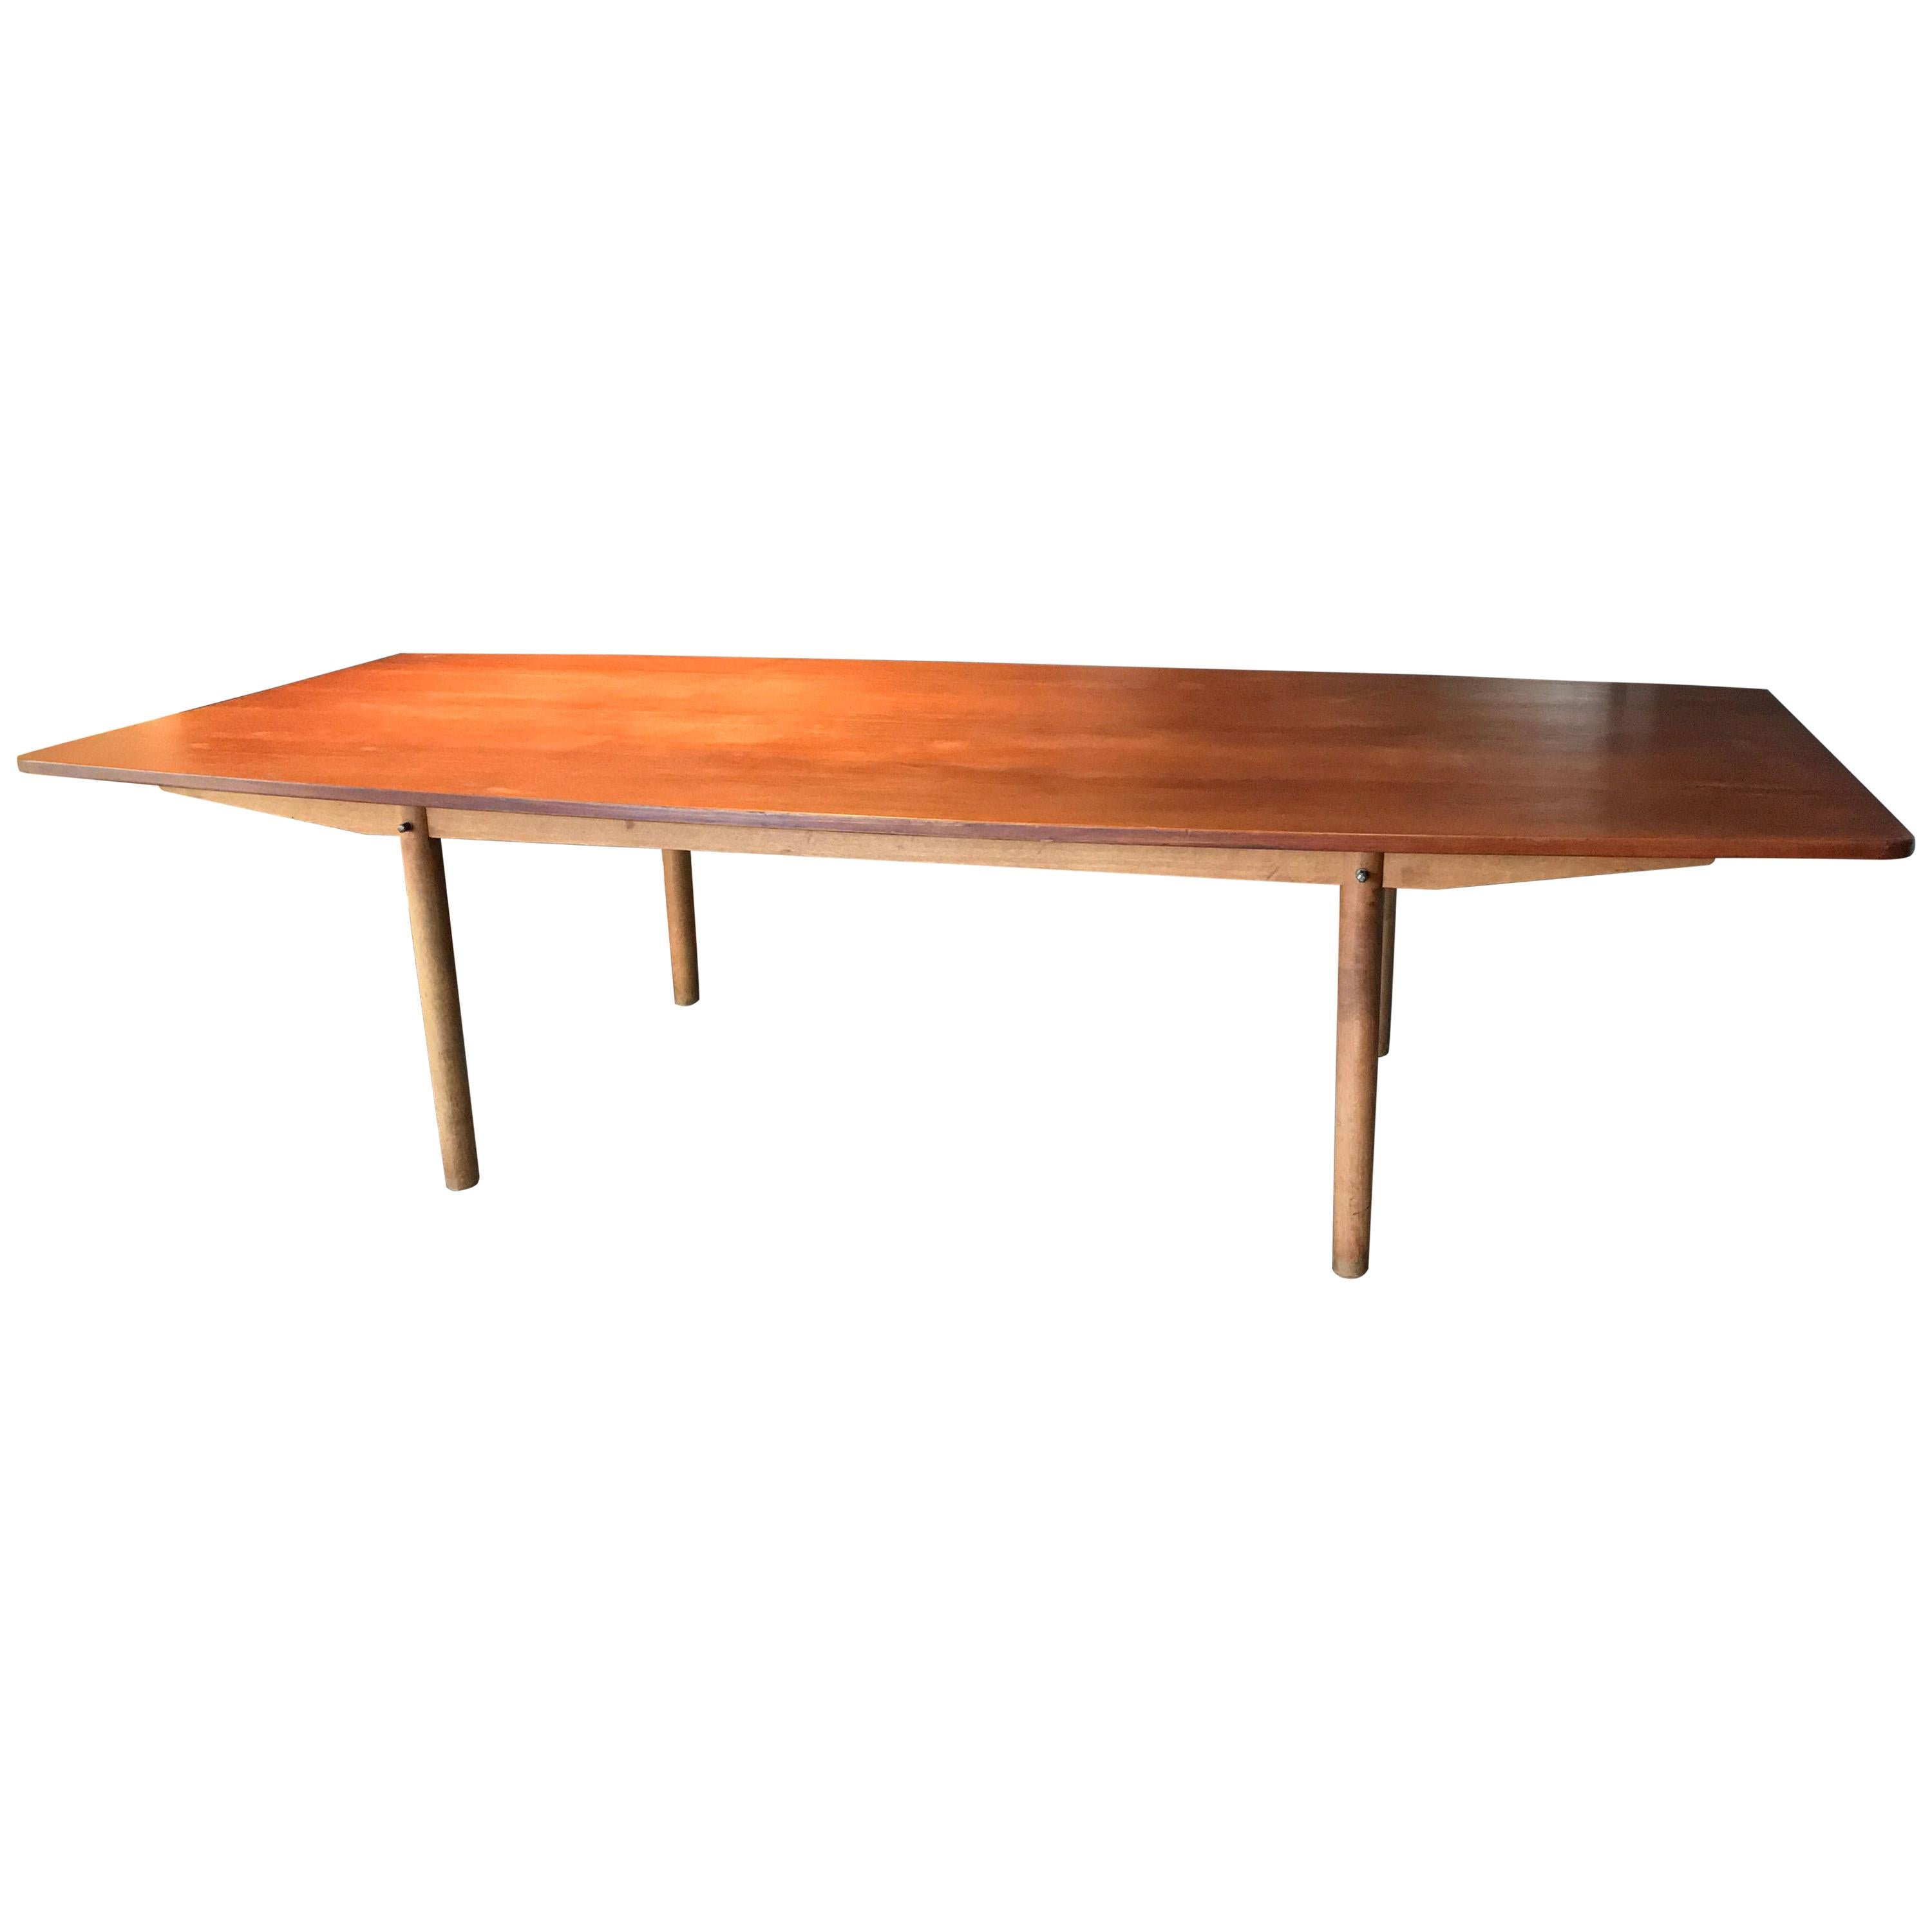 Important and Large Teak and Oak Dining or Conference Table by Hans Wegner